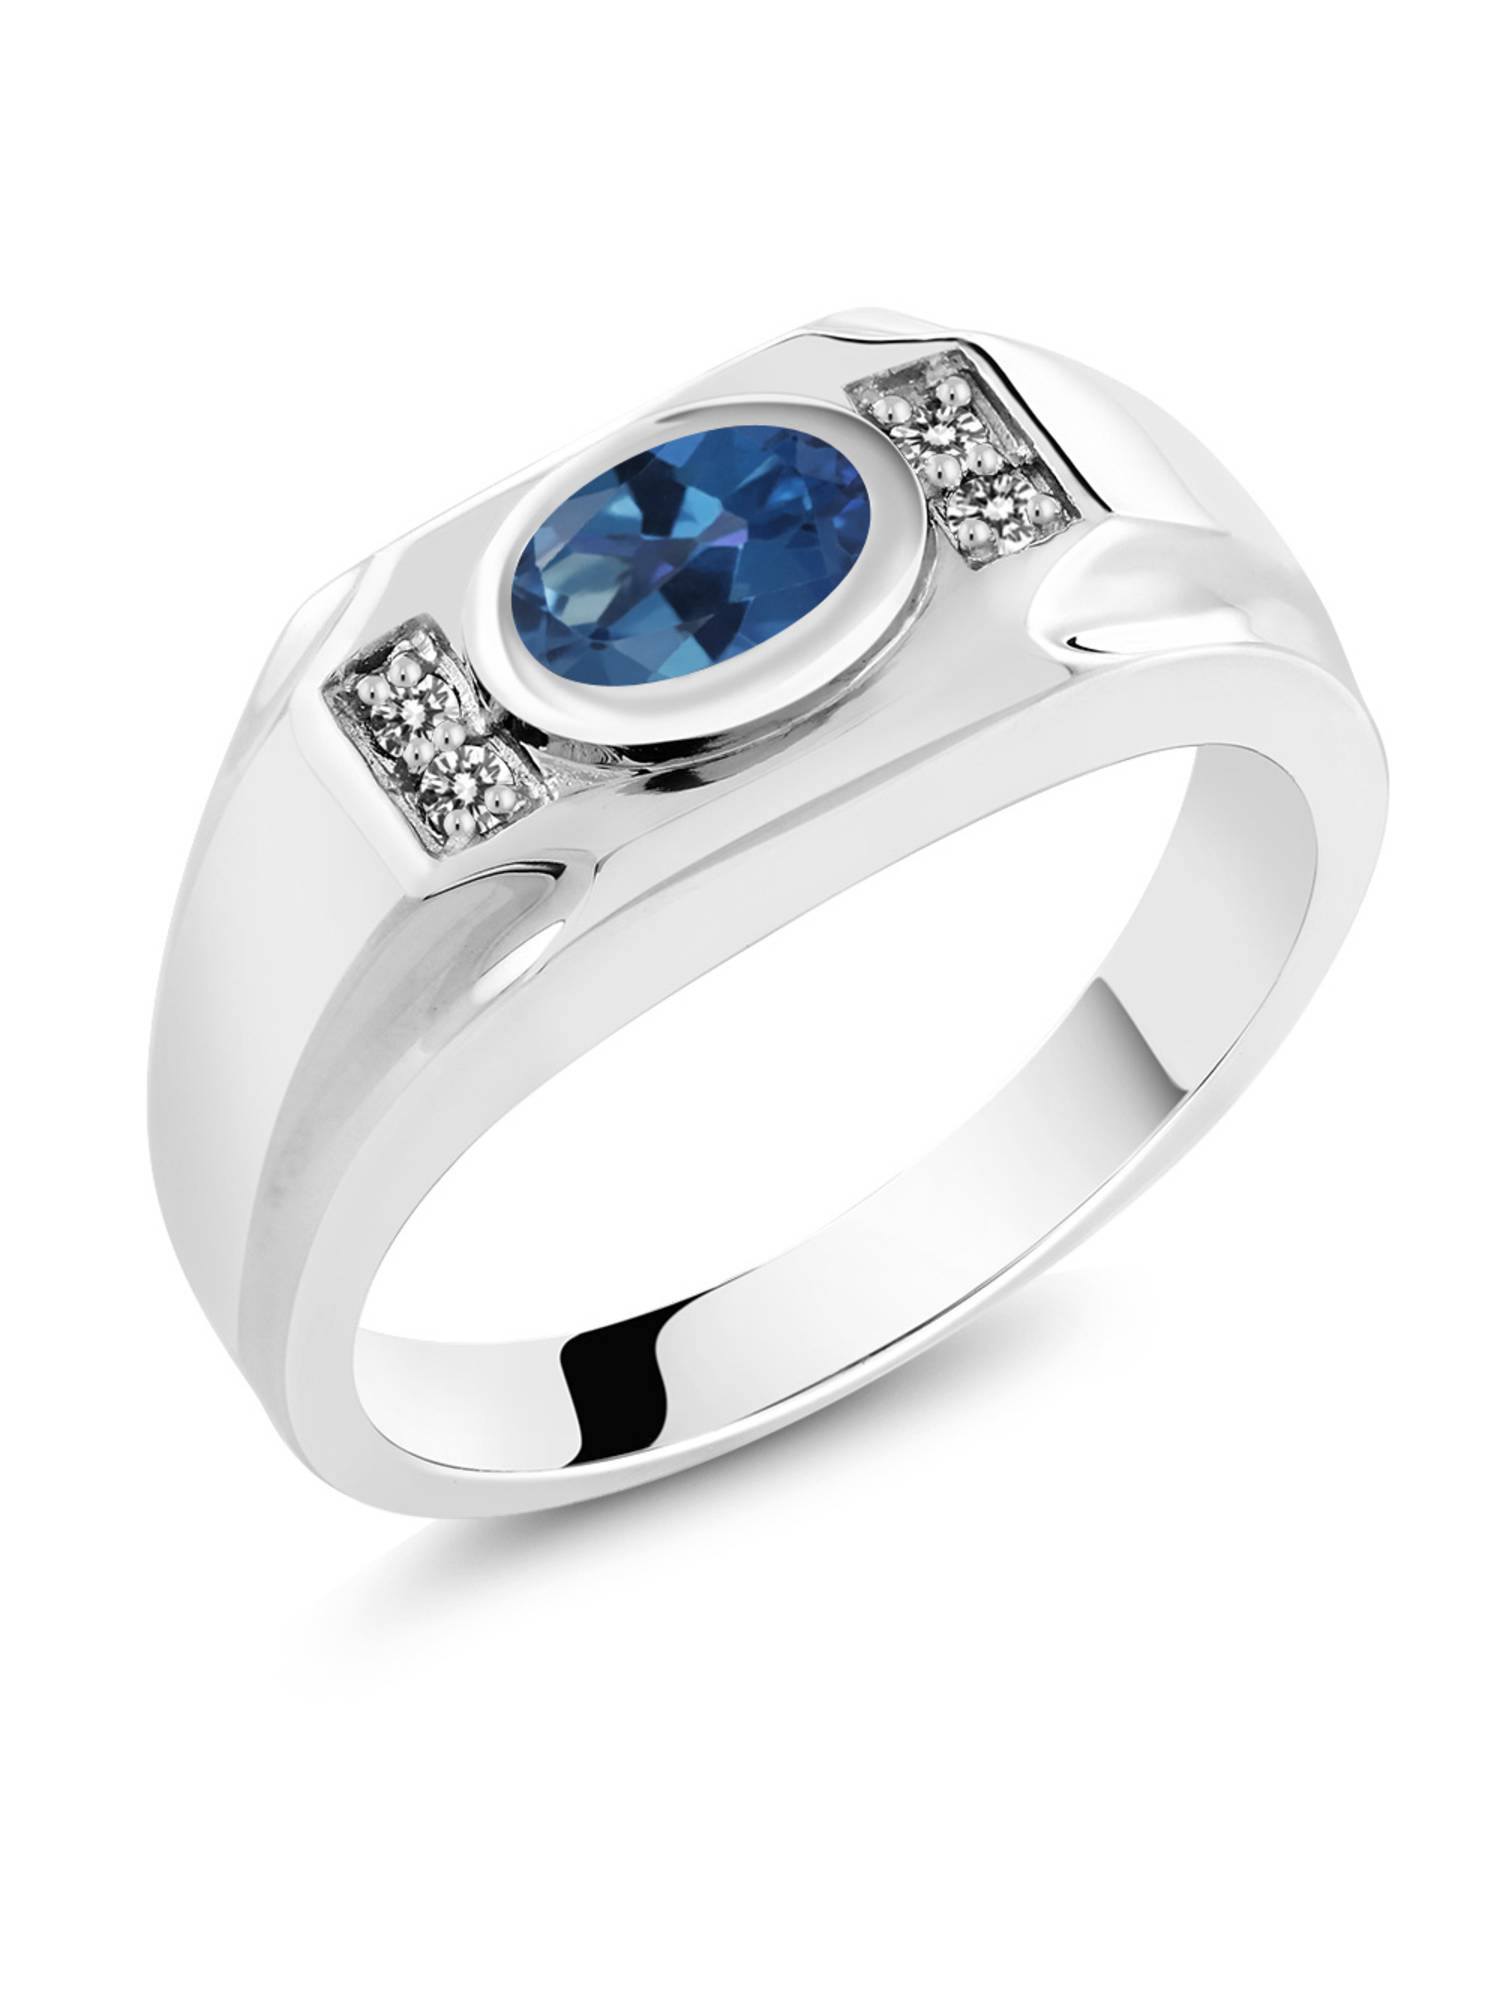 1.73 Ct Royal Blue Mystic Topaz White Diamond 925 Sterling Silver Men's Ring by